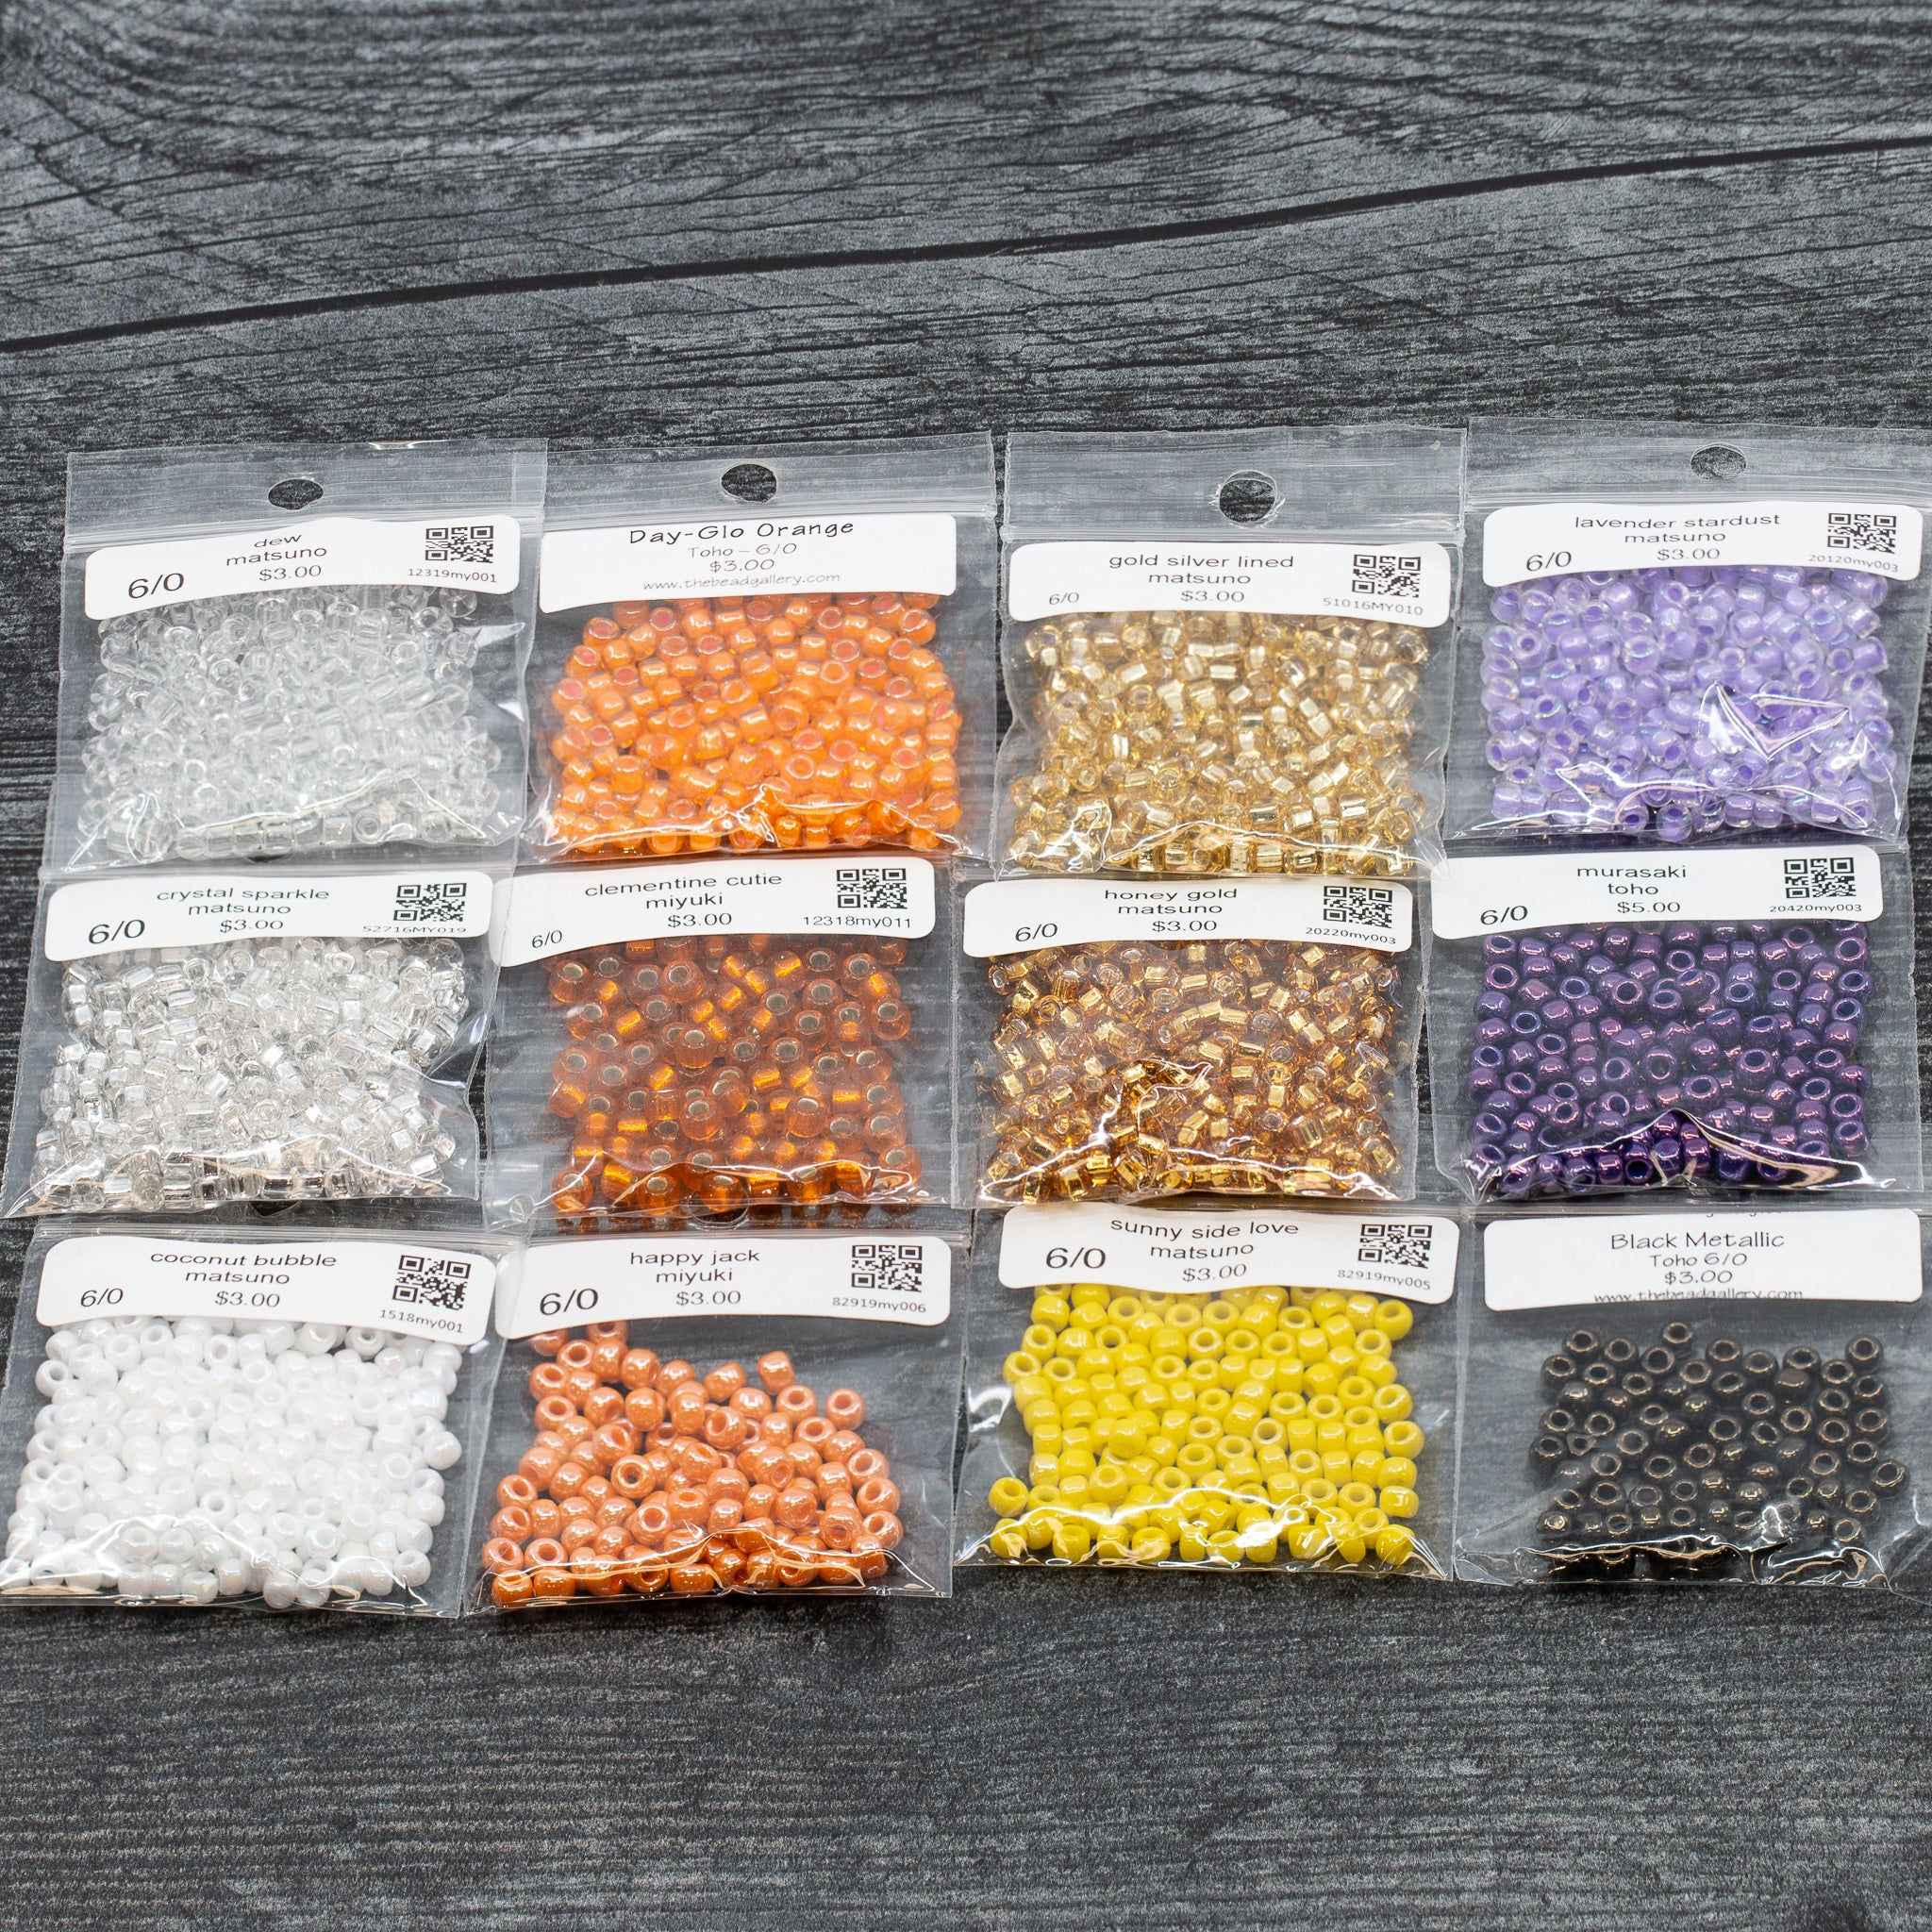 Halloween 6/0 Seed Bead Collection